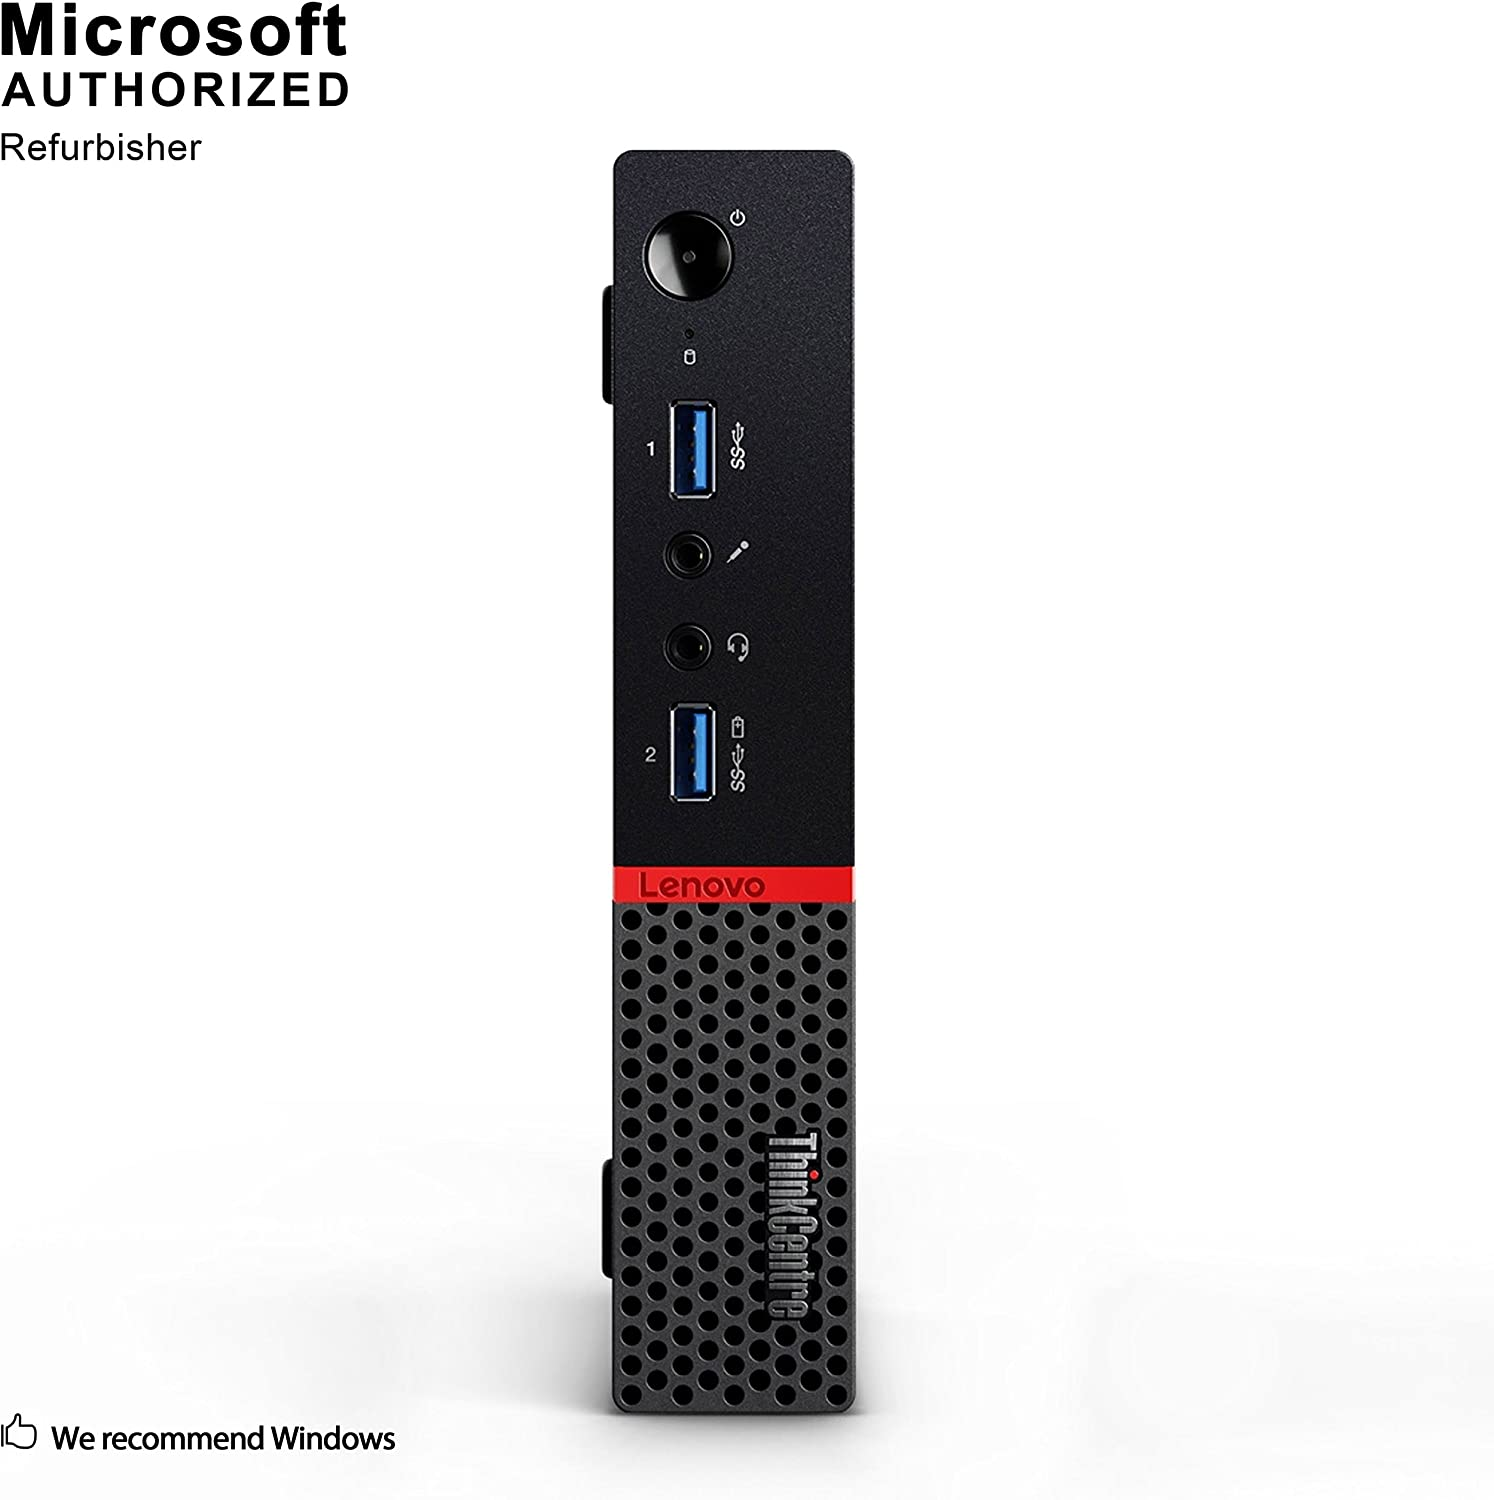 Lenovo ThinkCentre M700 Tiny Business Desktop PC, Intel Quad Core i5-6500T up to 3.1GHz, 16G DDR4, 1T, WiFi, Bluetooth 4.0, Windows 10 64-Multi-Language Support English/Spanish/French (Renewed)